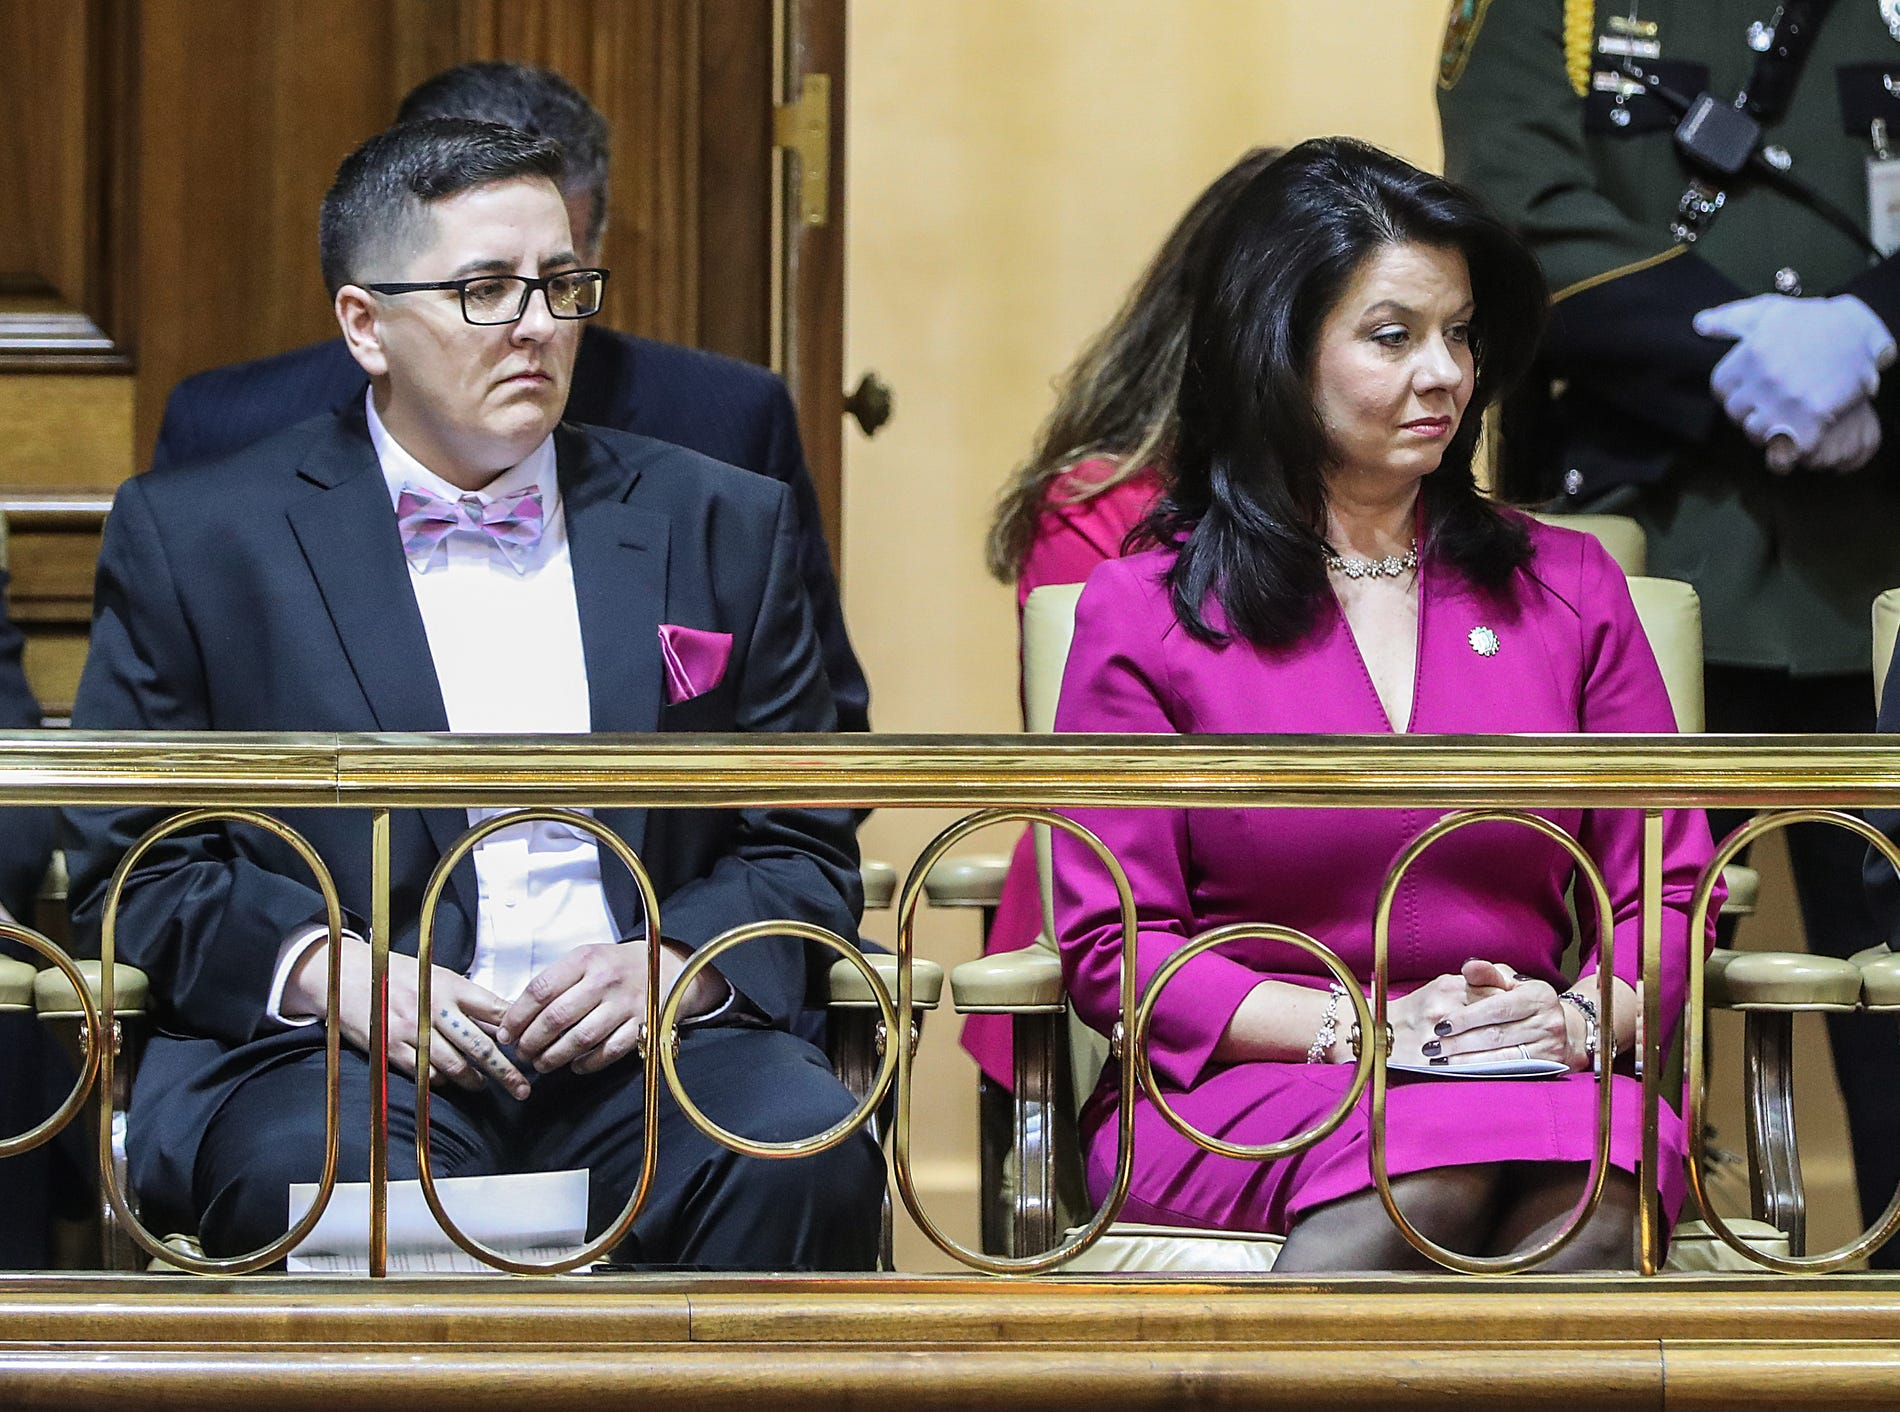 From left, Brittany Young and Janet Holcomb listen as Gov. Eric Holcomb delivers the annual State of the State address at the Indiana Statehouse in Indianapolis, Tuesday, Jan. 15, 2019. Young spent five years in prison where she learned welding and manufacturing. Since leaving Madison Correctional Facility, she's gotten a job and purchased her own home.